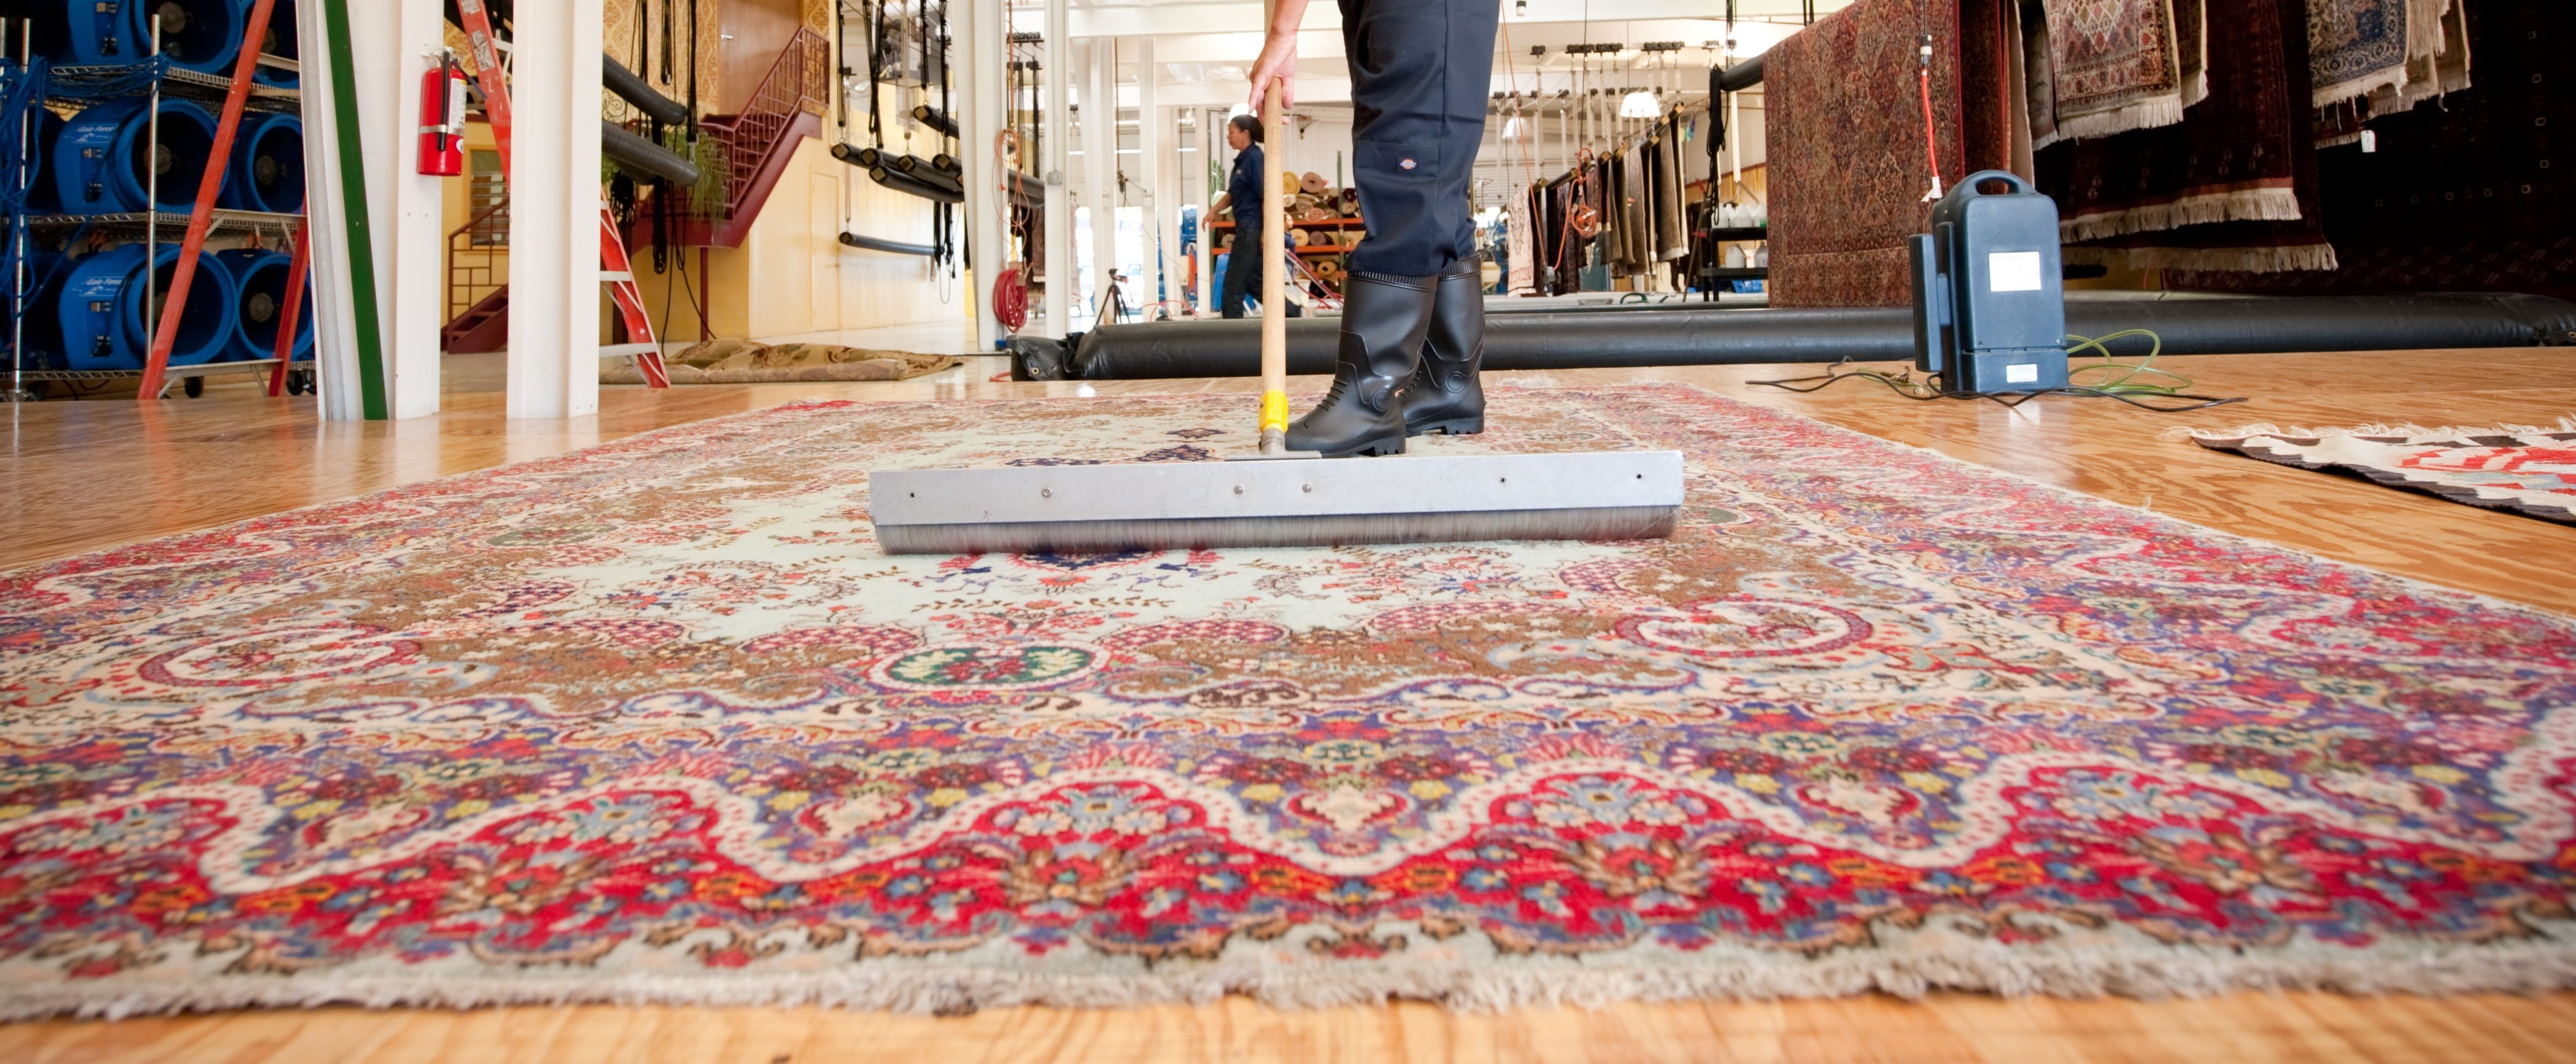 How To Clean An Oriental Rugs Tips To Help You Take Care Of Your Rug How To Clean Carpet Oriental Rug Cleaning Commercial Carpet Cleaning